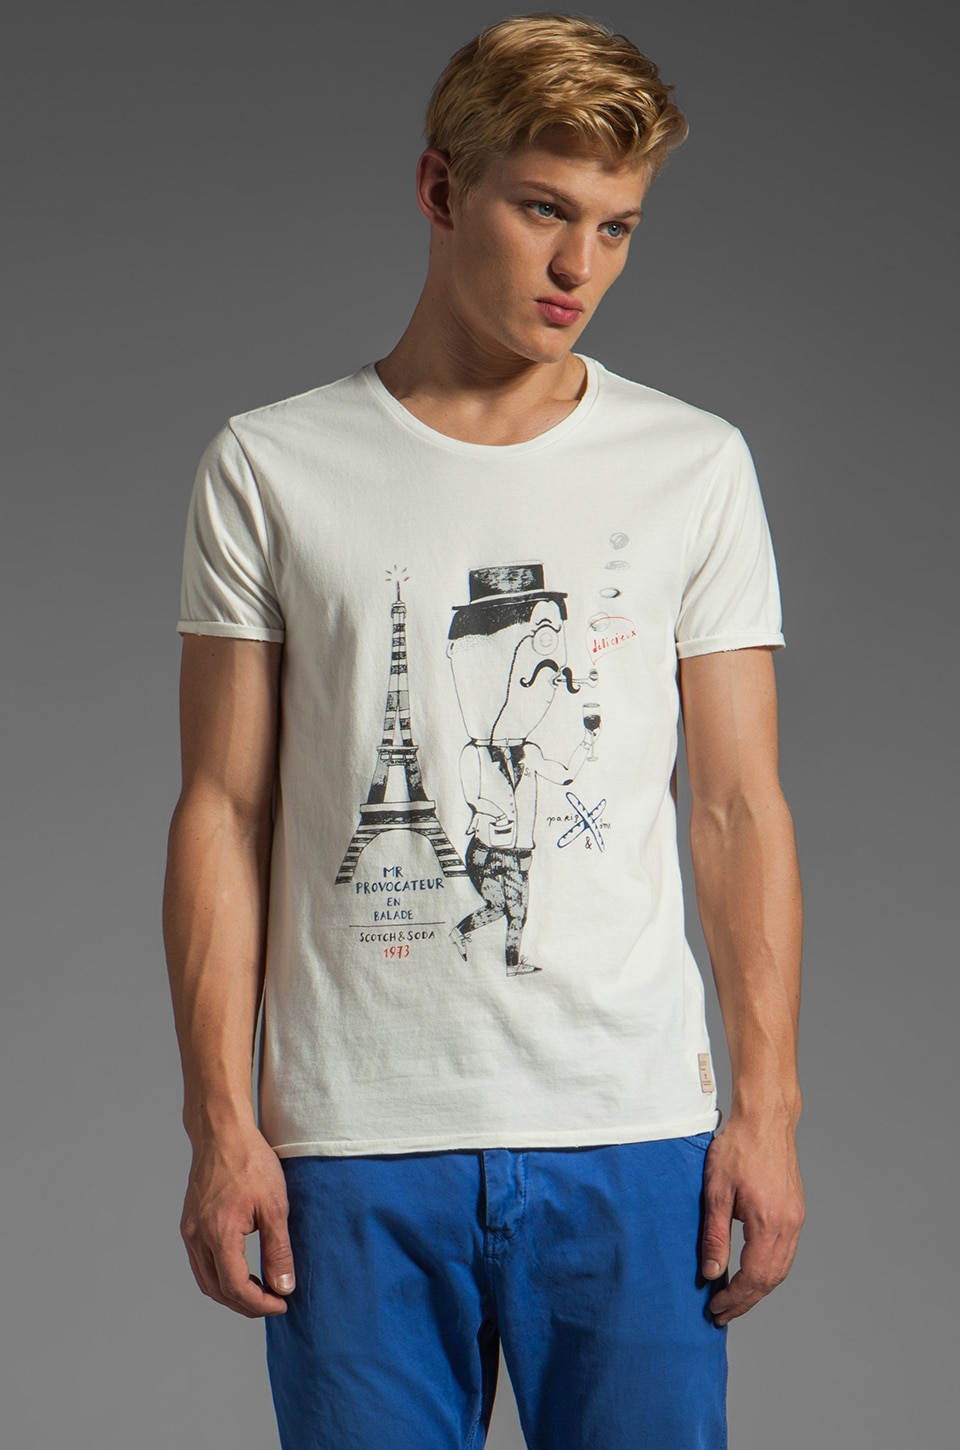 Scotch & Soda Mr. Provocateur Tee in White